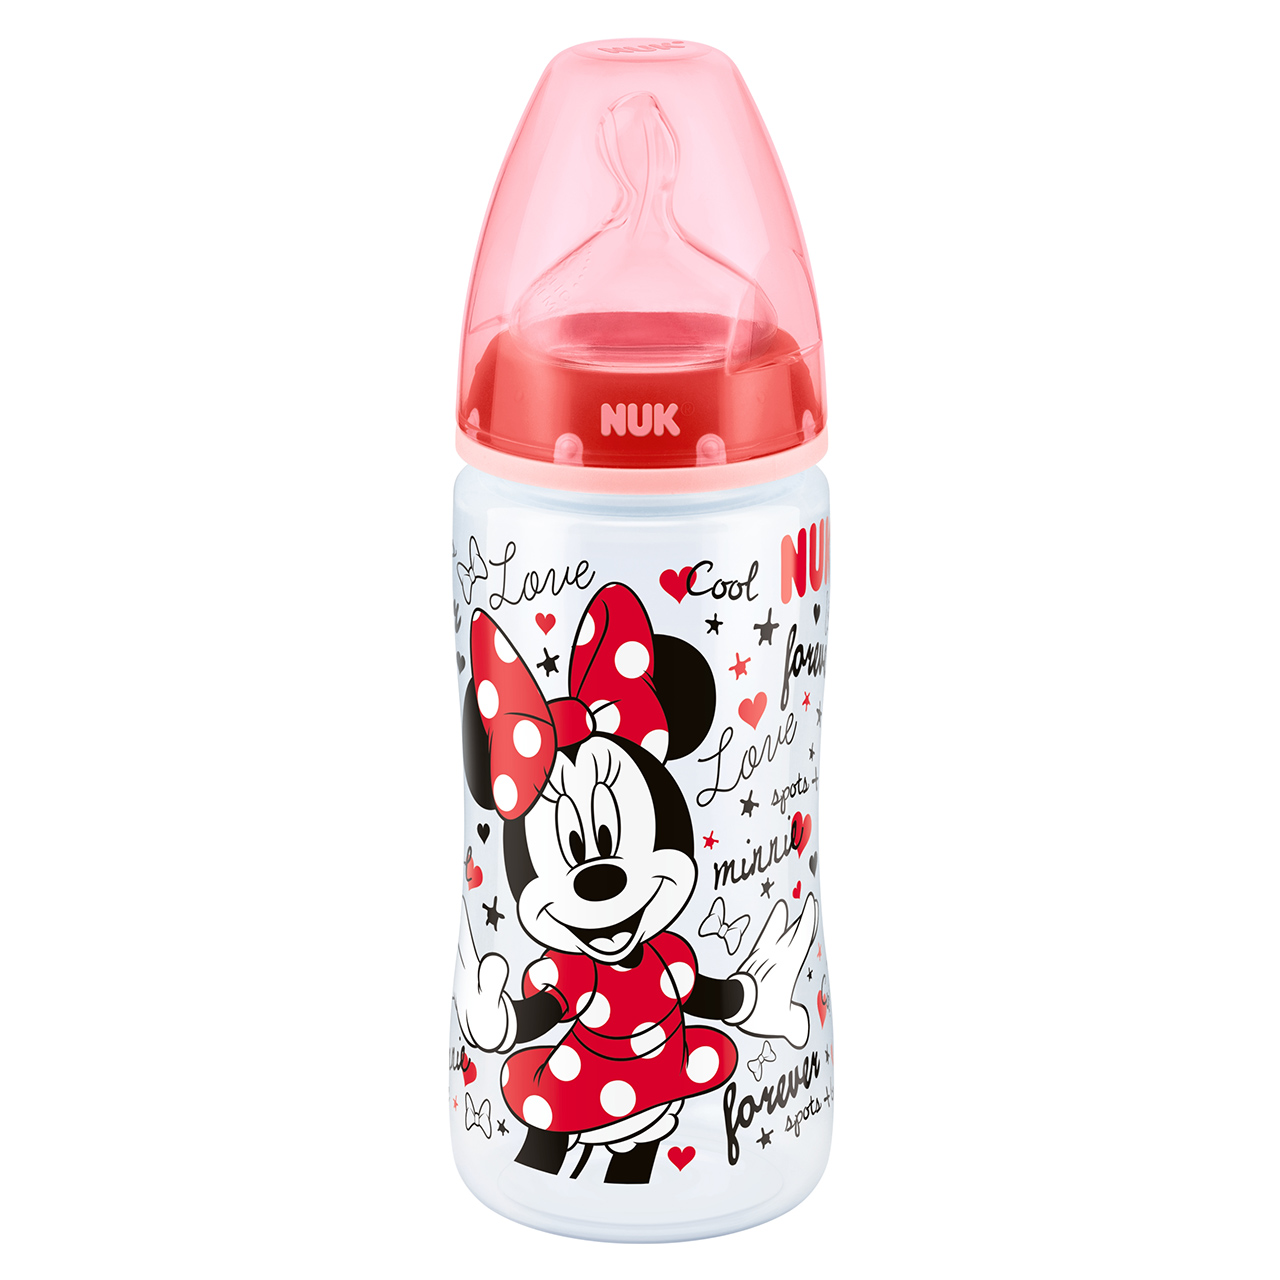 NUK First Choice Disney Mickey & Minnie Baby Bottle 300ml Size 2 Silicone Teat